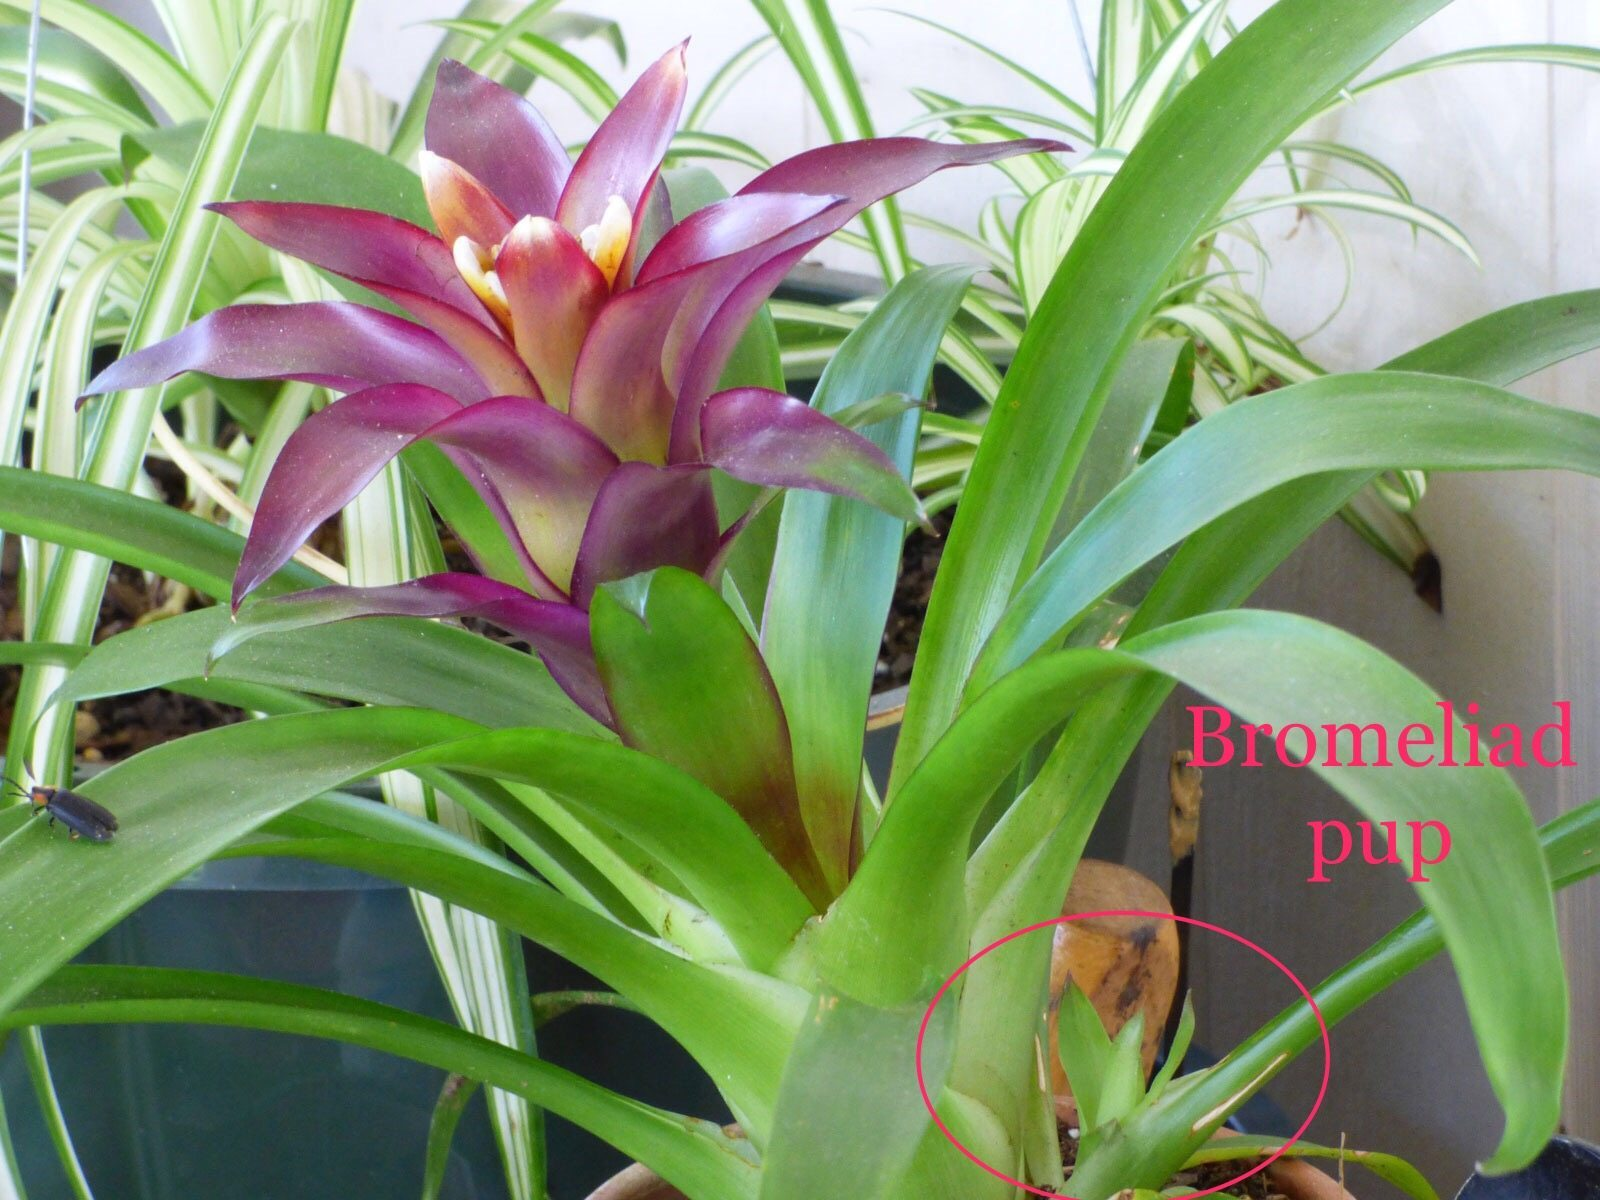 Pup Starts From Bromeliad Plants Tips On Planting Bromeliad Pups